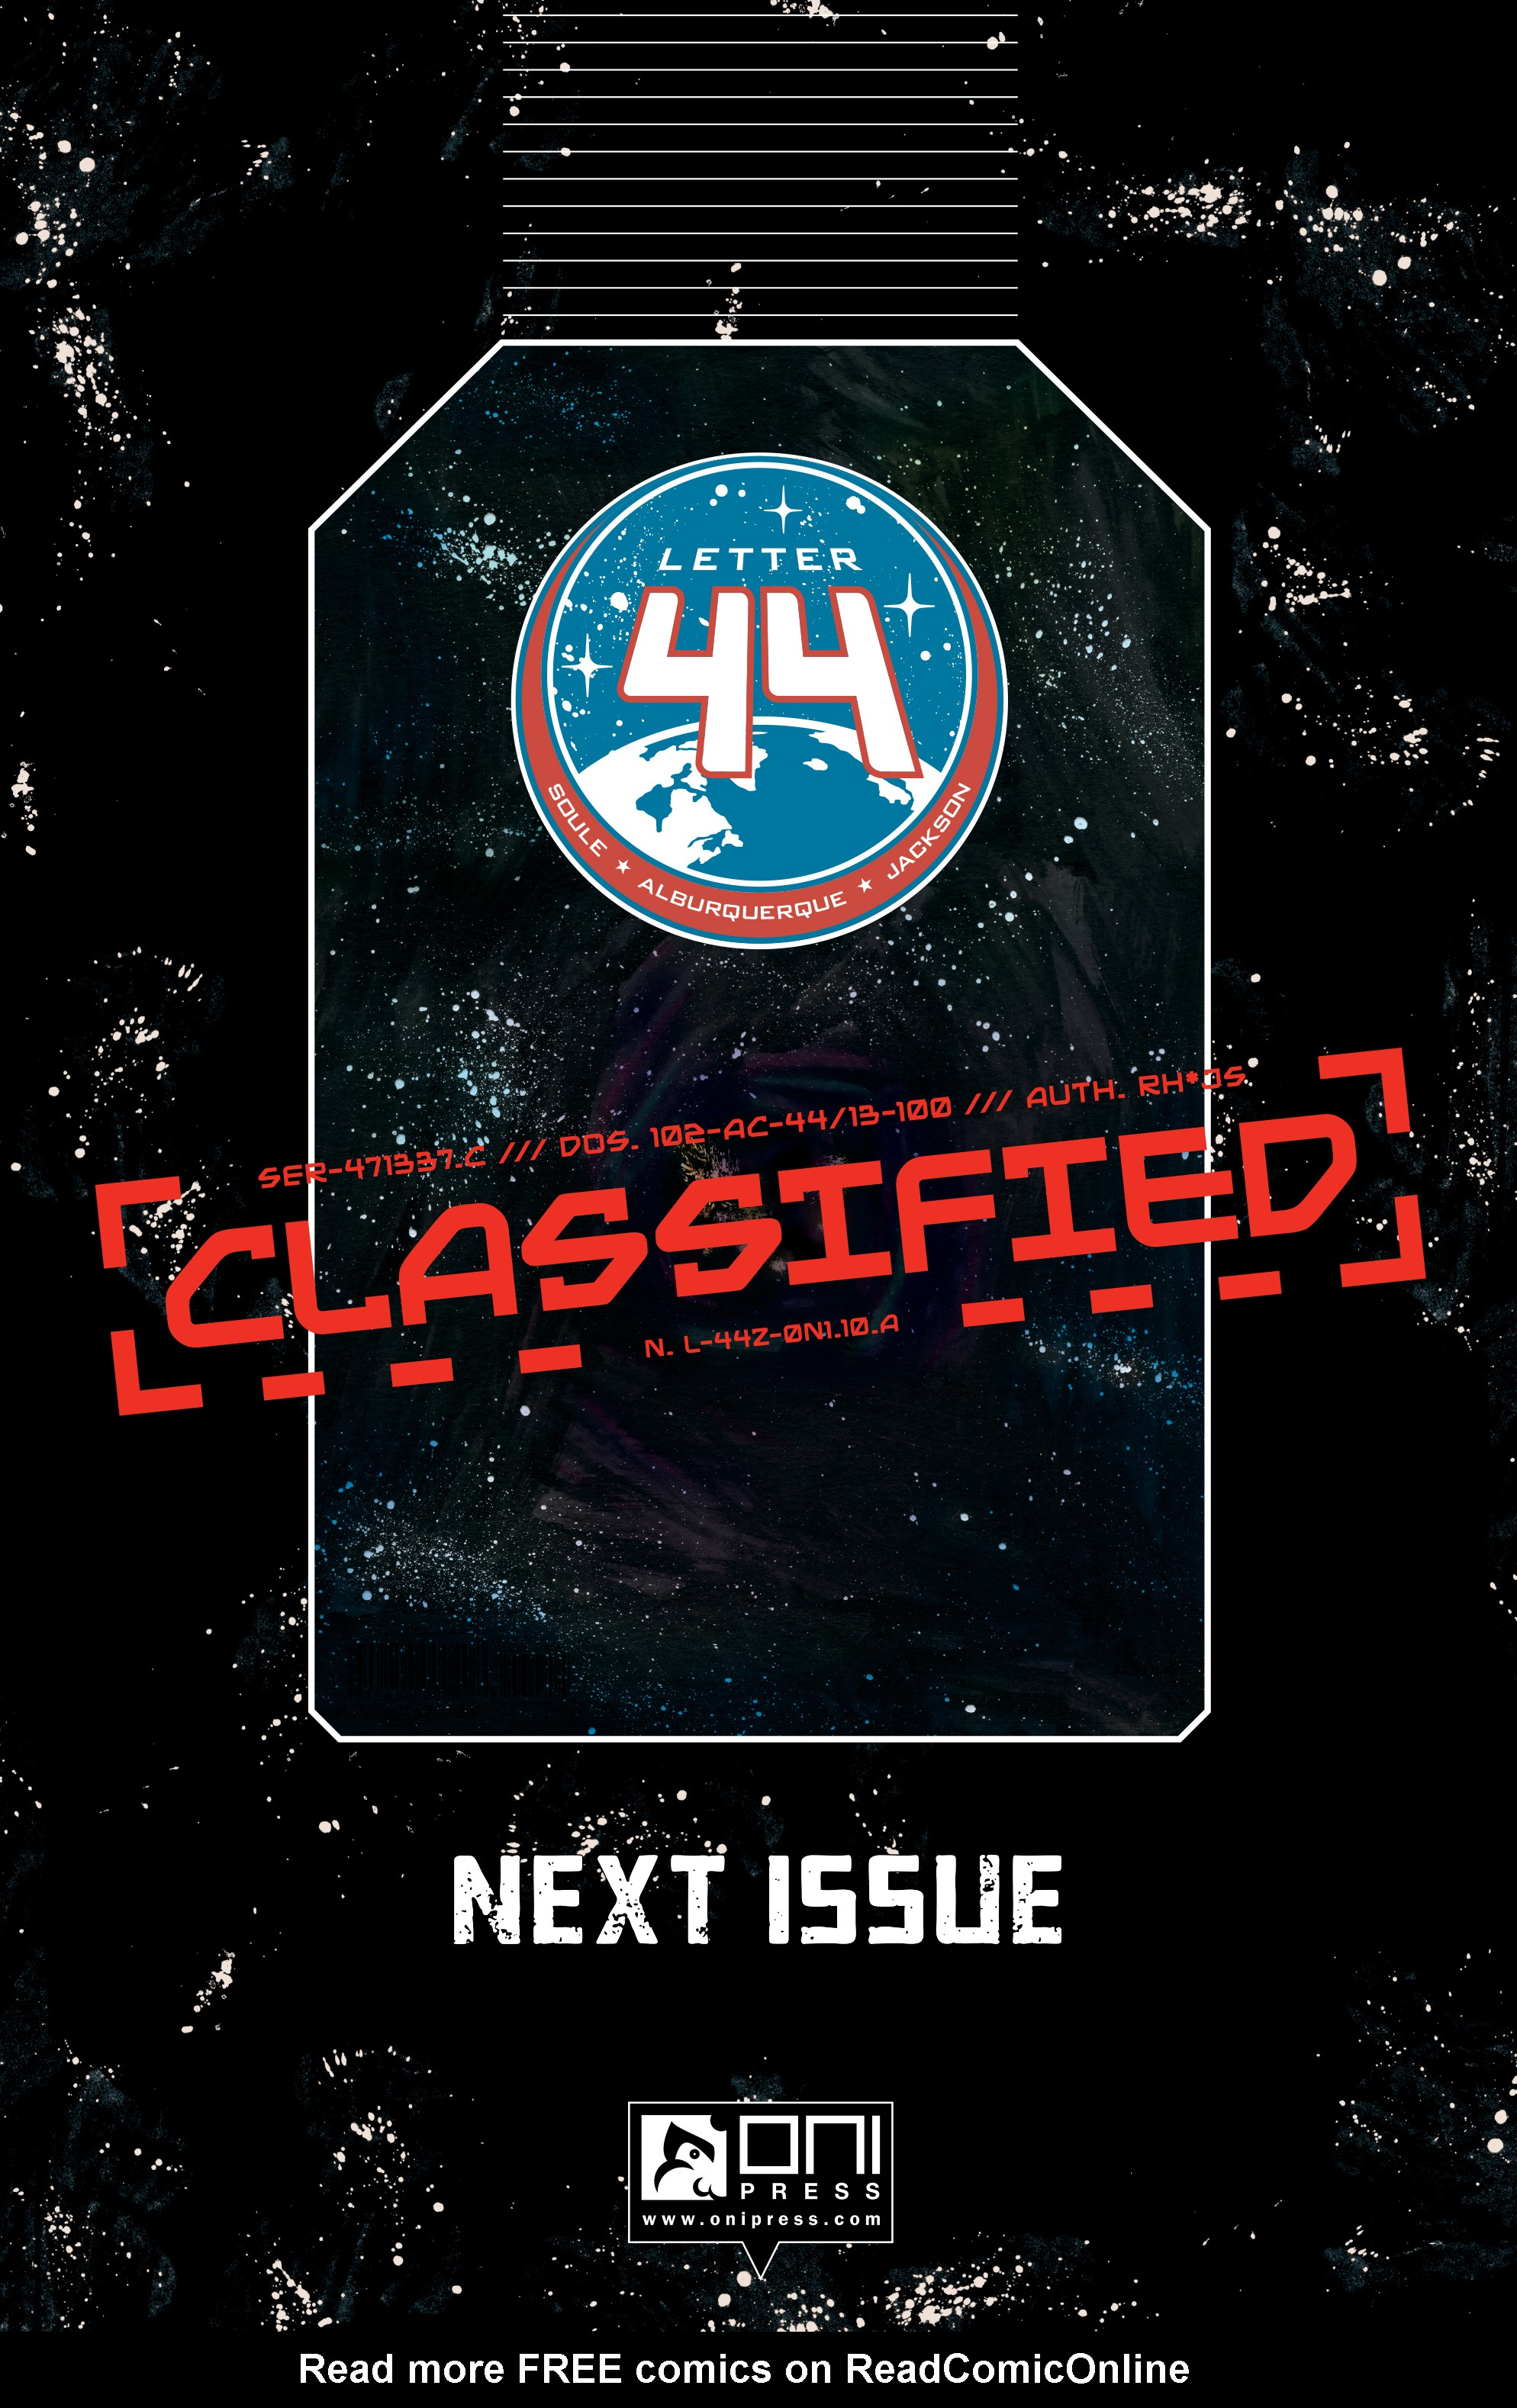 Read online Letter 44 comic -  Issue #33 - 23